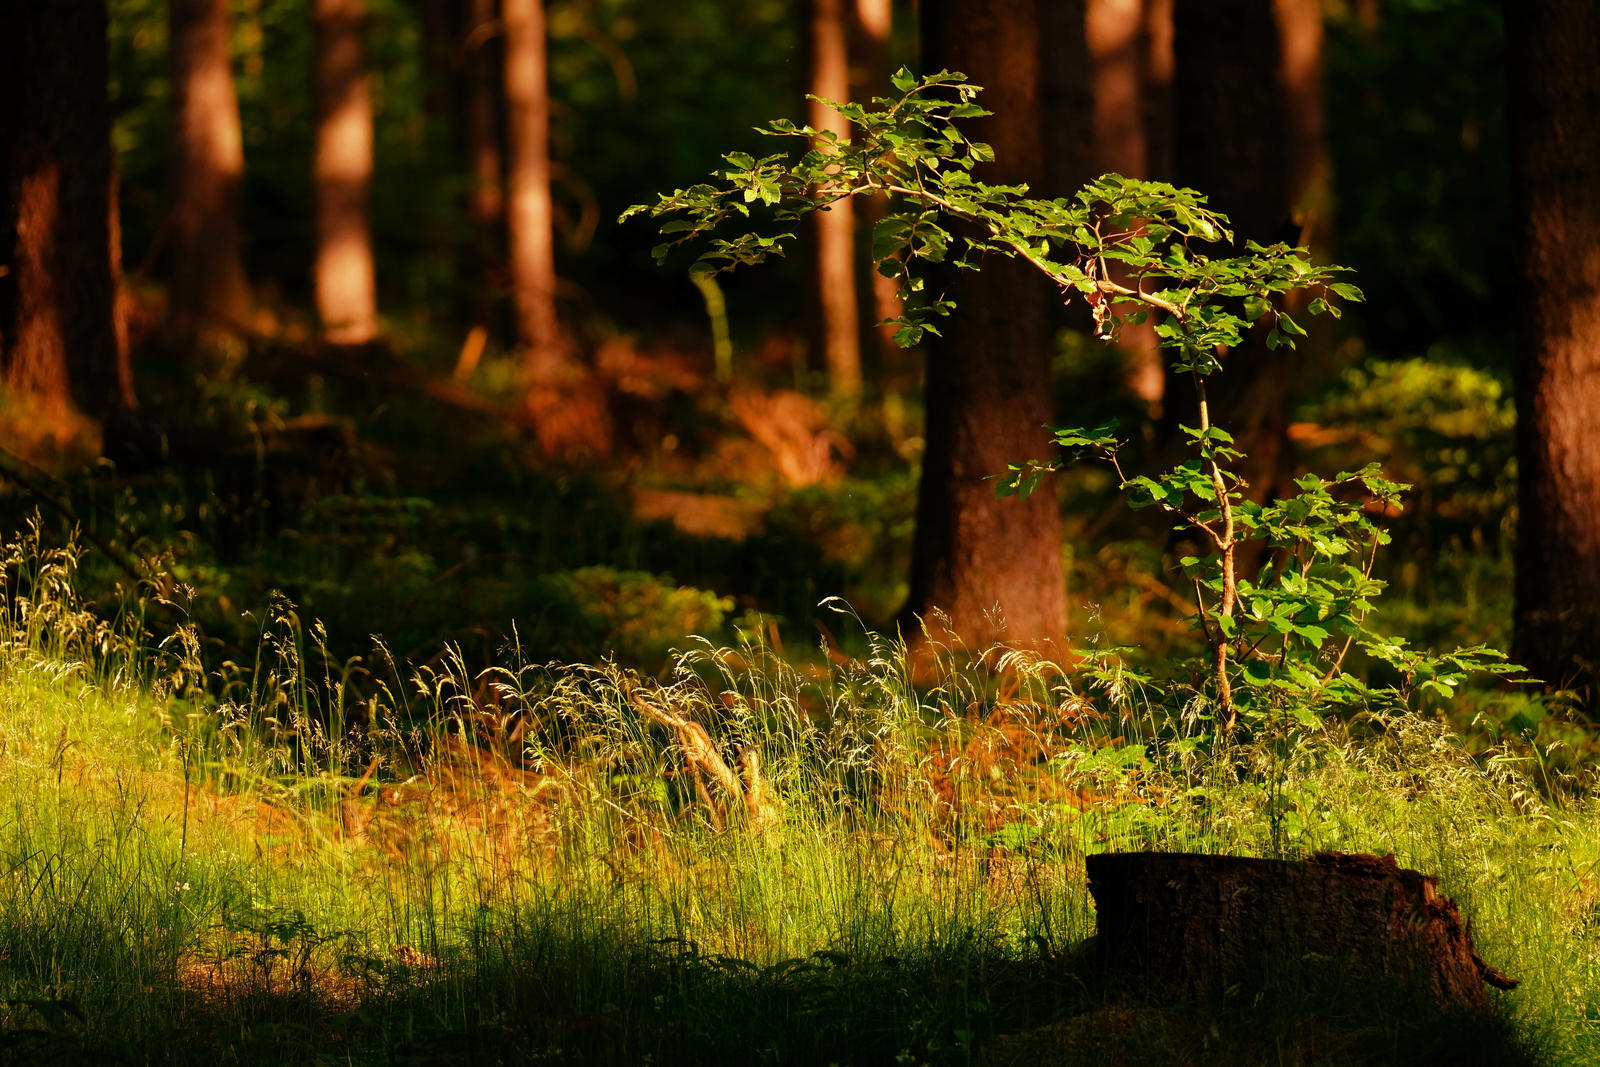 Forest in Detail by LoveForDetails